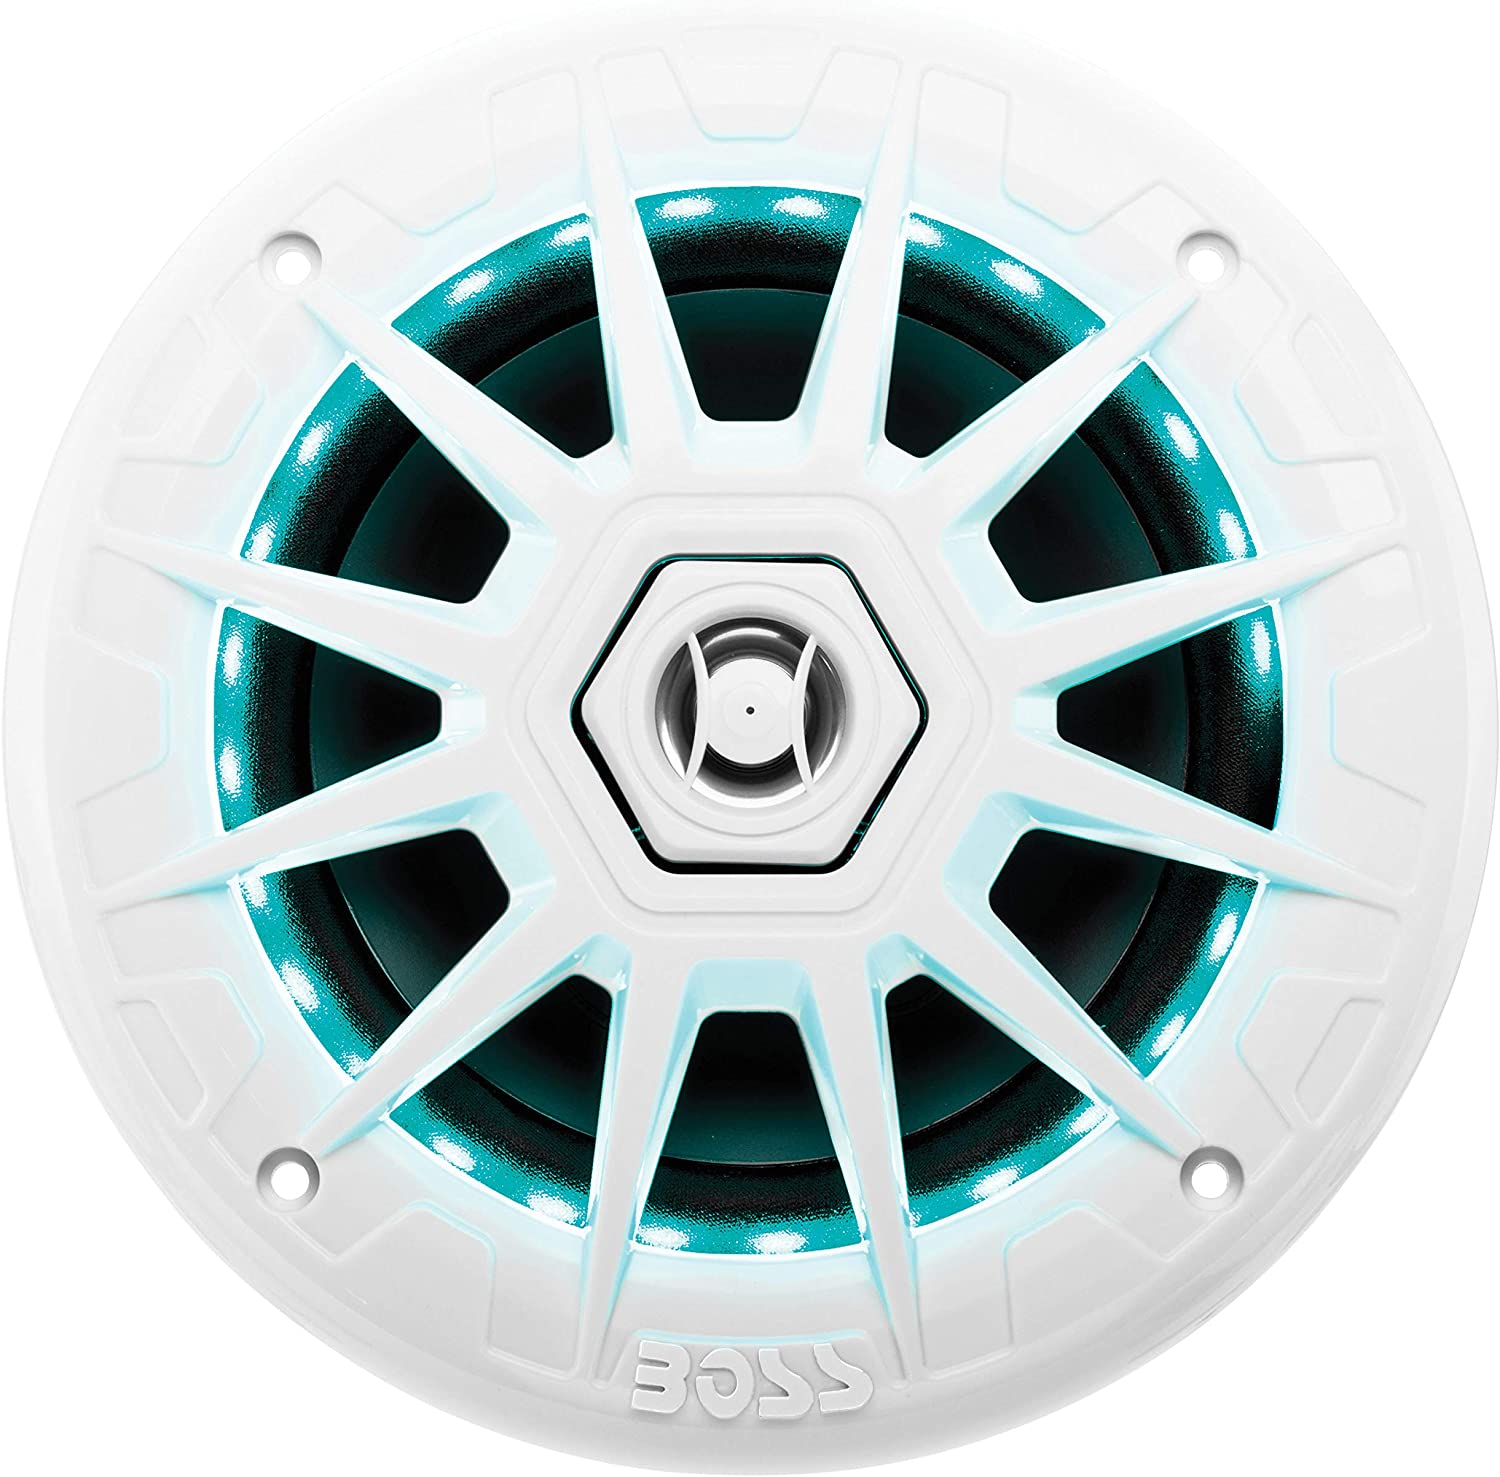 BOSS Audio Systems MRGB65 6.5 Inch Marine Speakers - Weatherproof, 200 Watts Per Pair, 100 Watts Each, Multi-Color Illumination, Full Range, 2 Way, Sold in Pairs, White